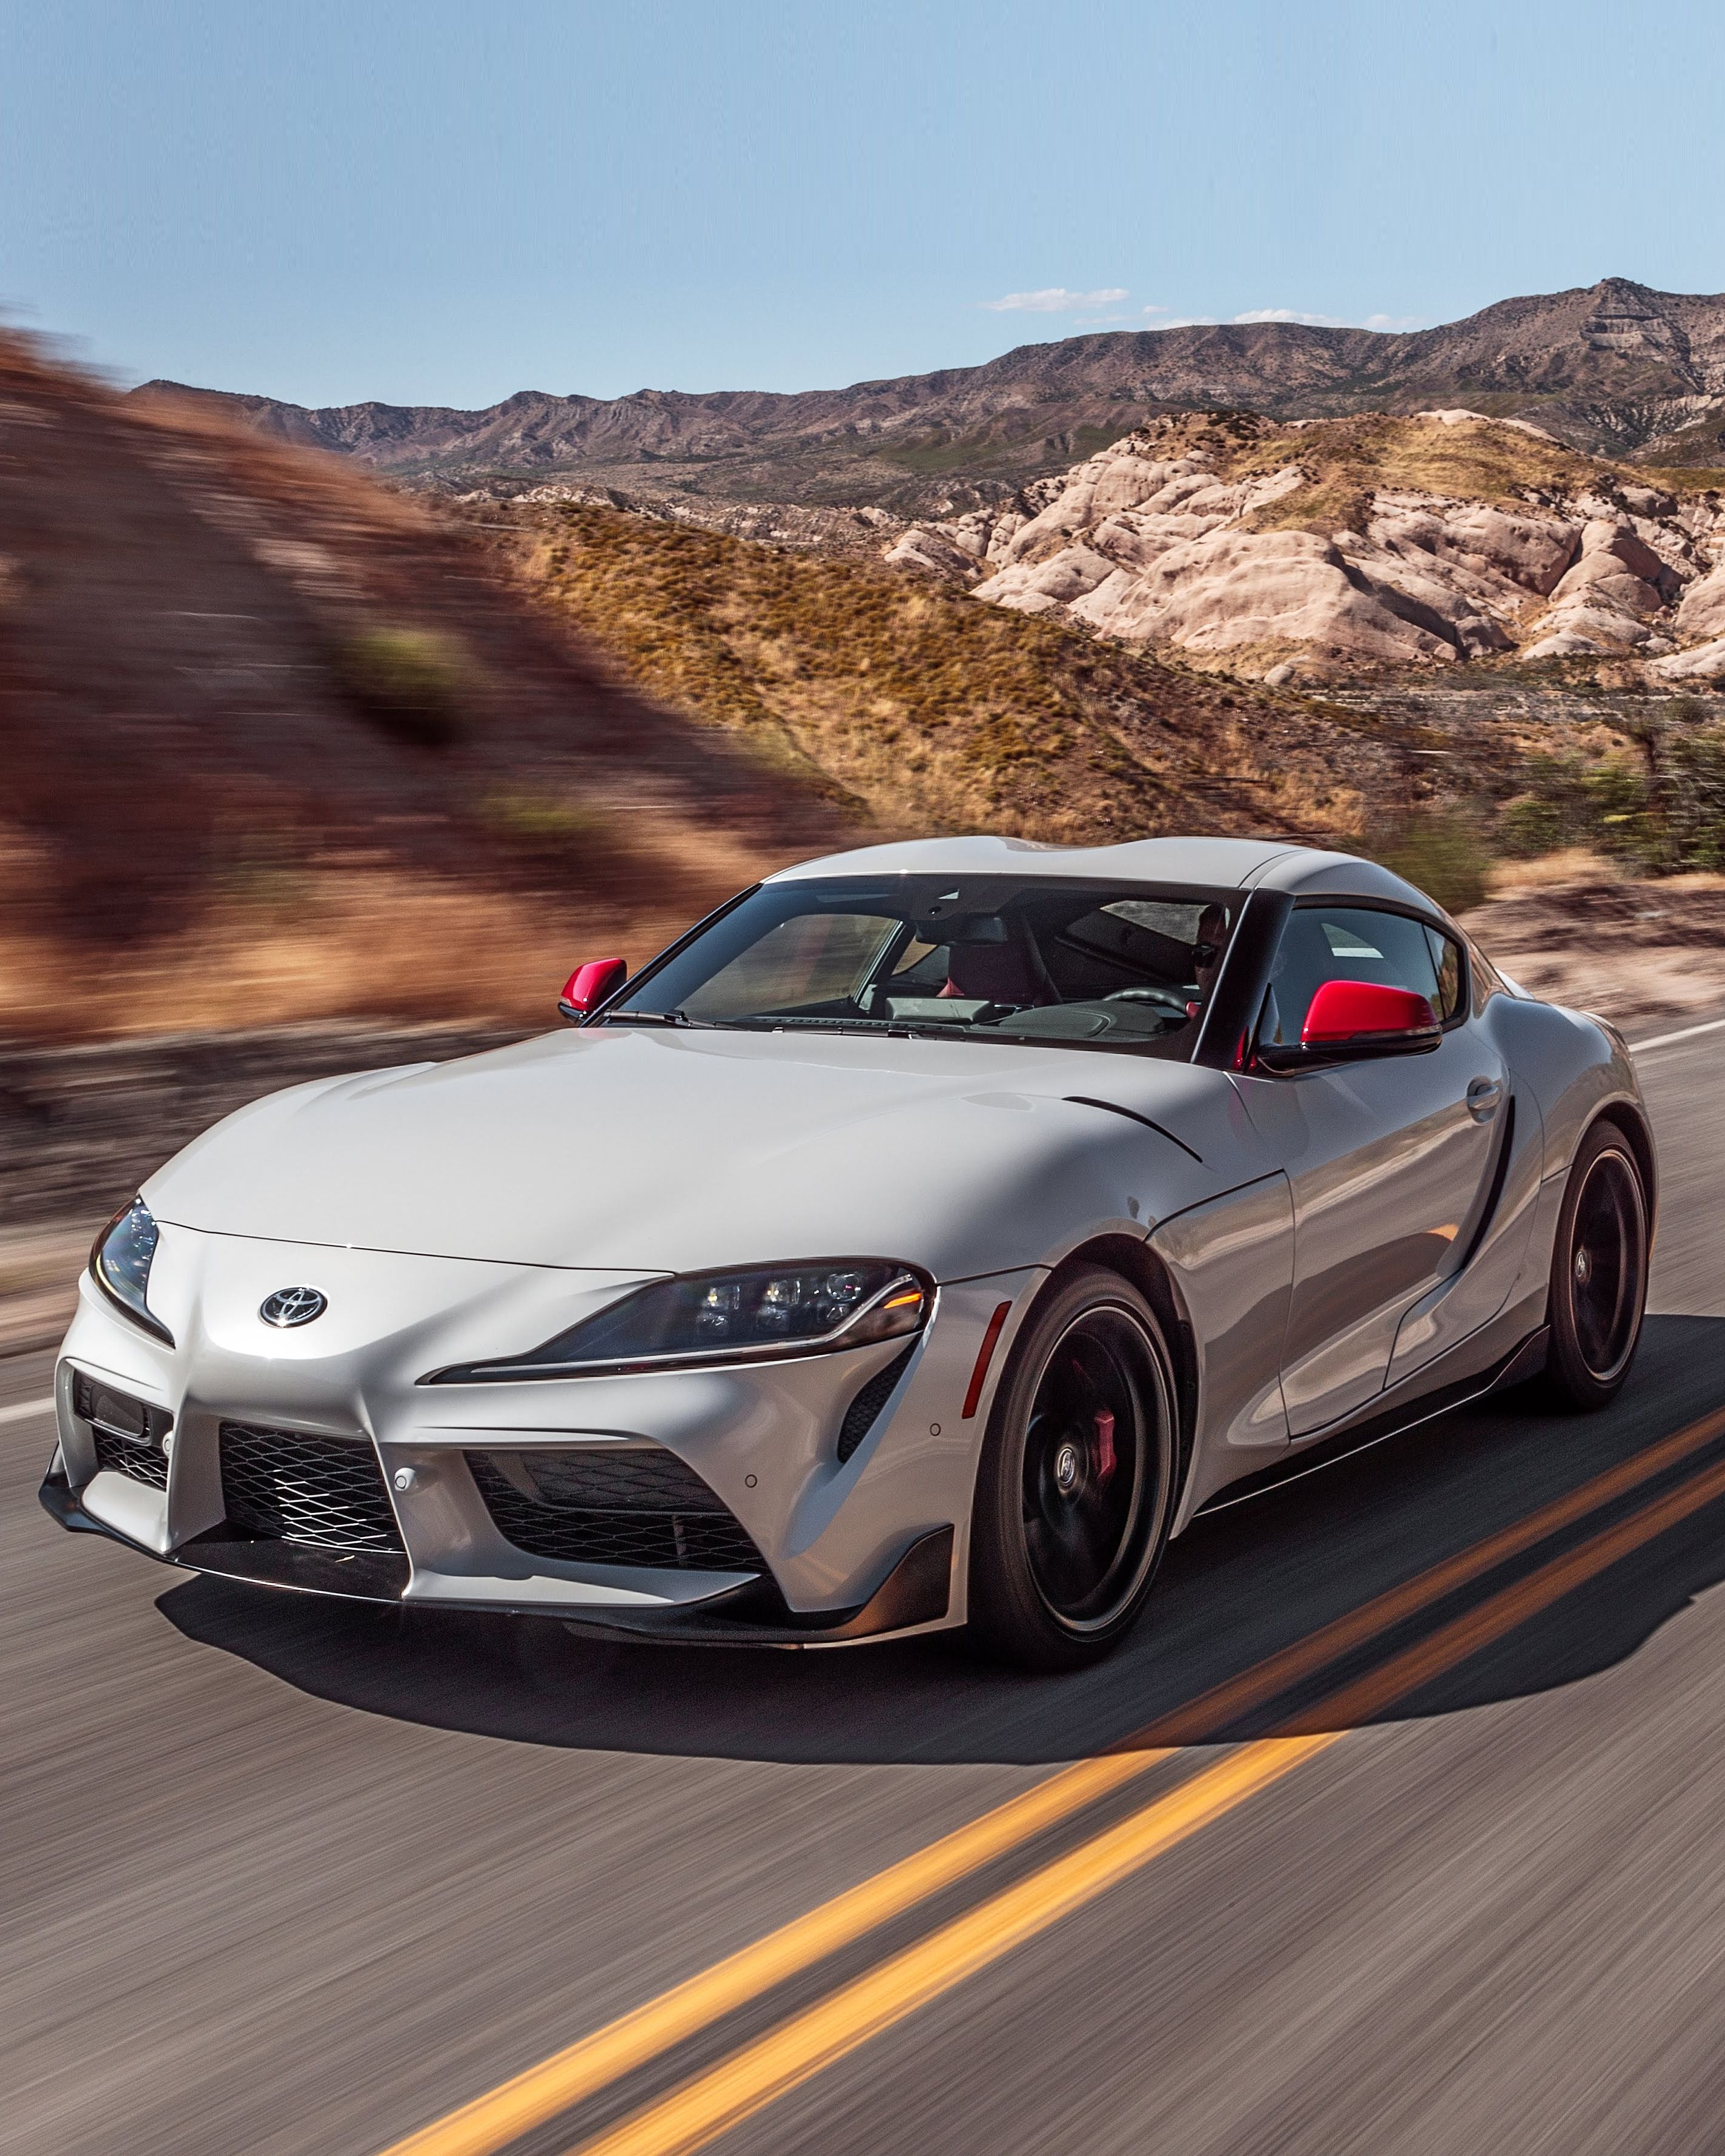 2020 Toyota Supra Launch Edition First Test Review Showtime Toyota Supra Japan Cars Toyota